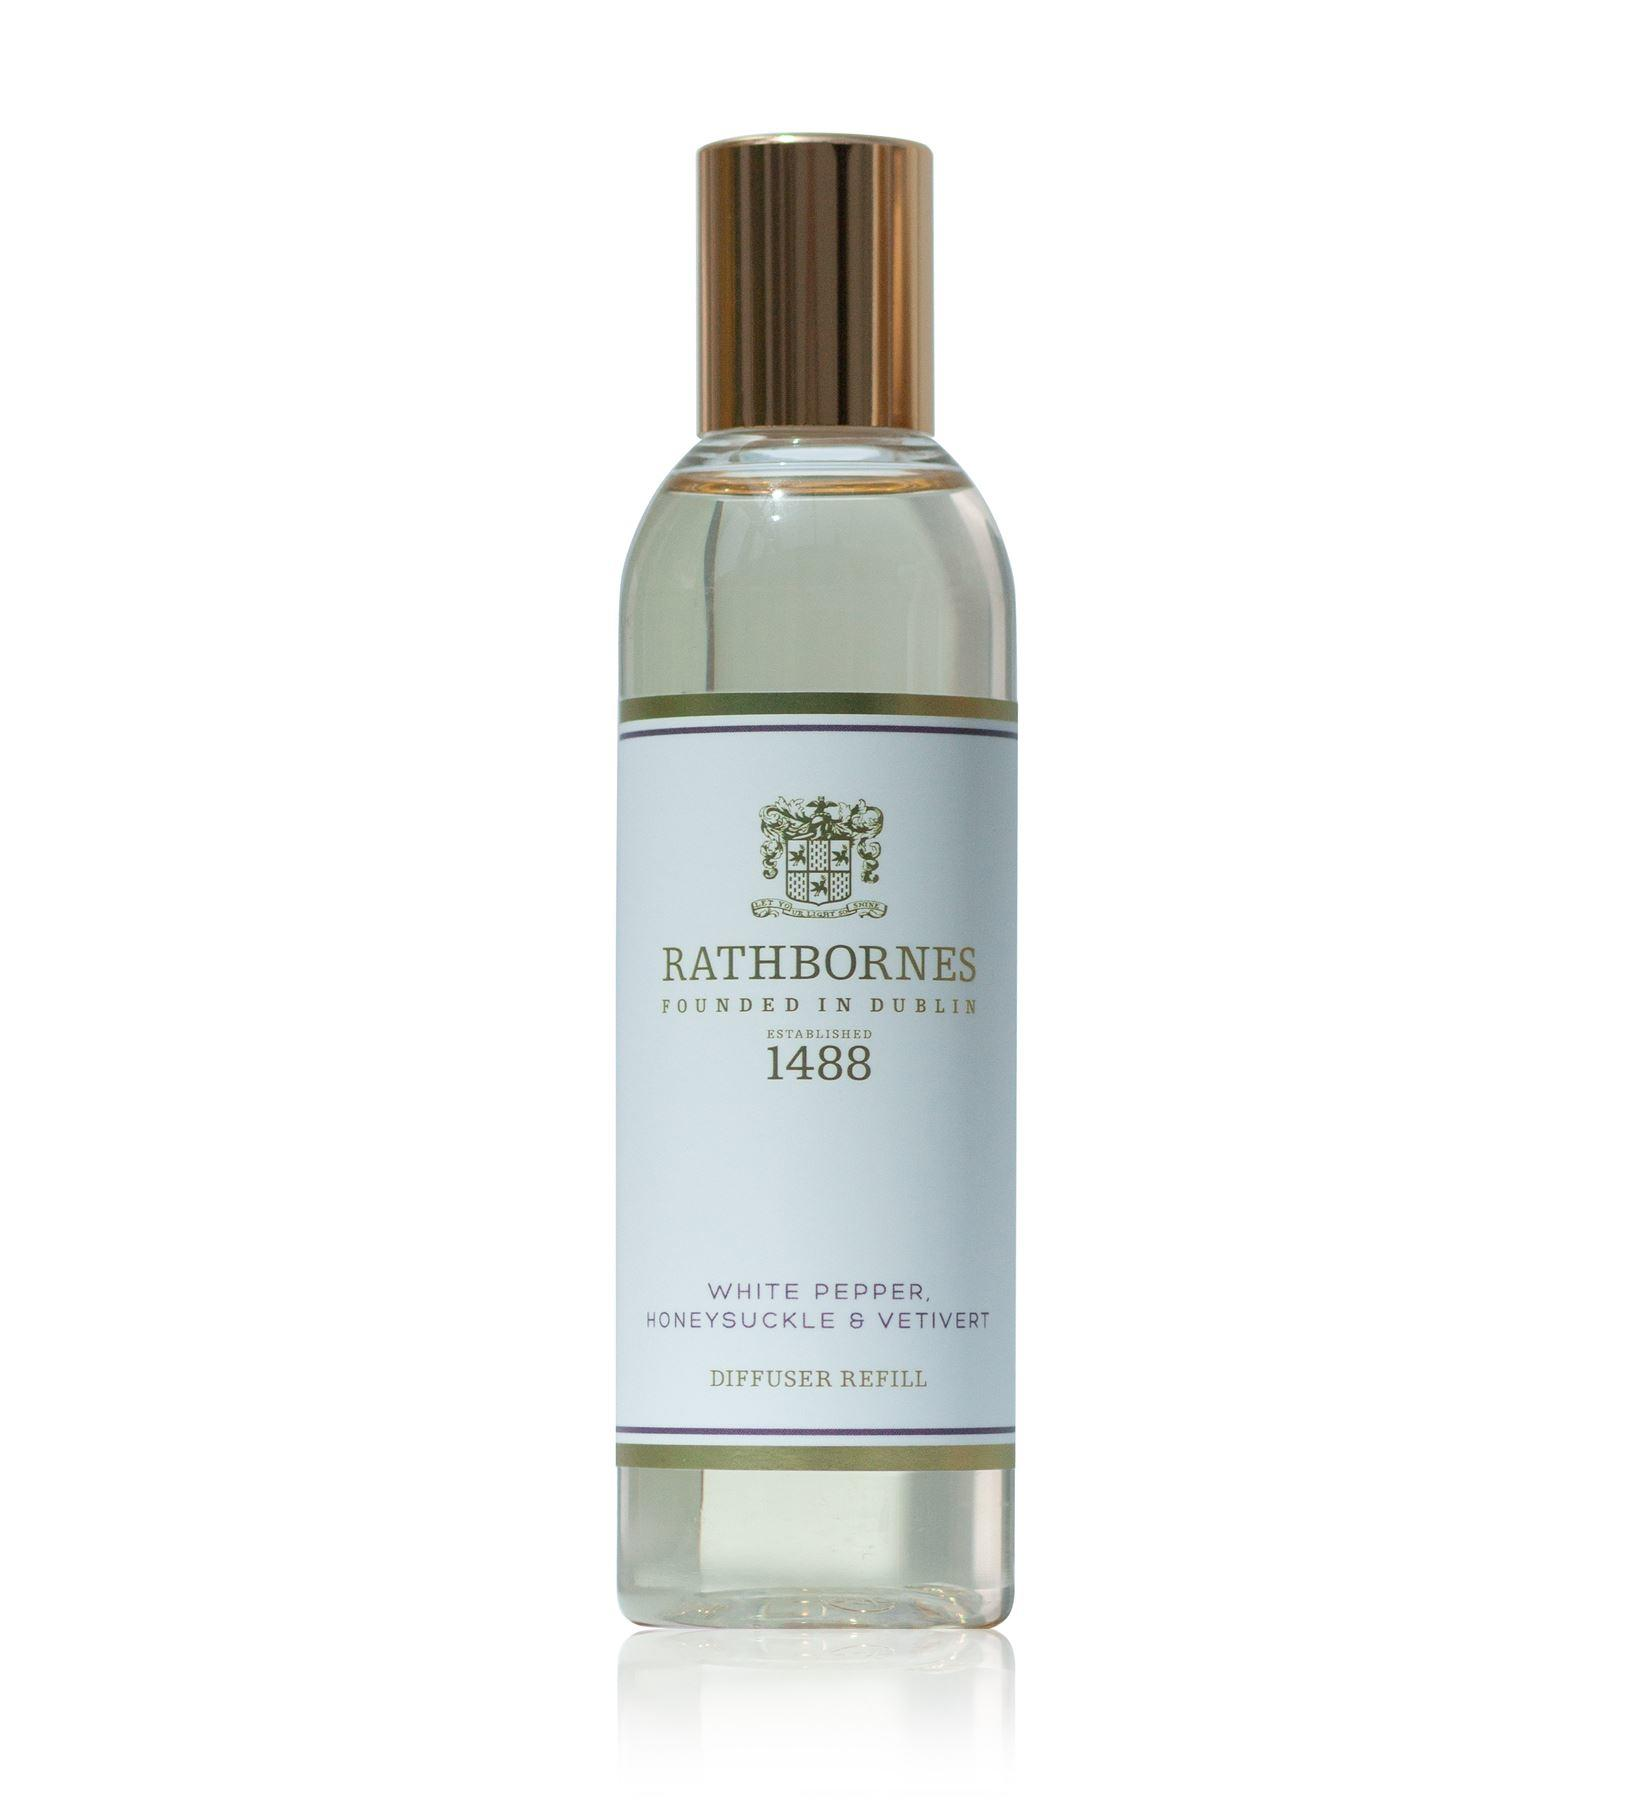 Rathbornes 1488 White Pepper, Honeysuckle & Vertivert Reed Diffuser Refill Oil